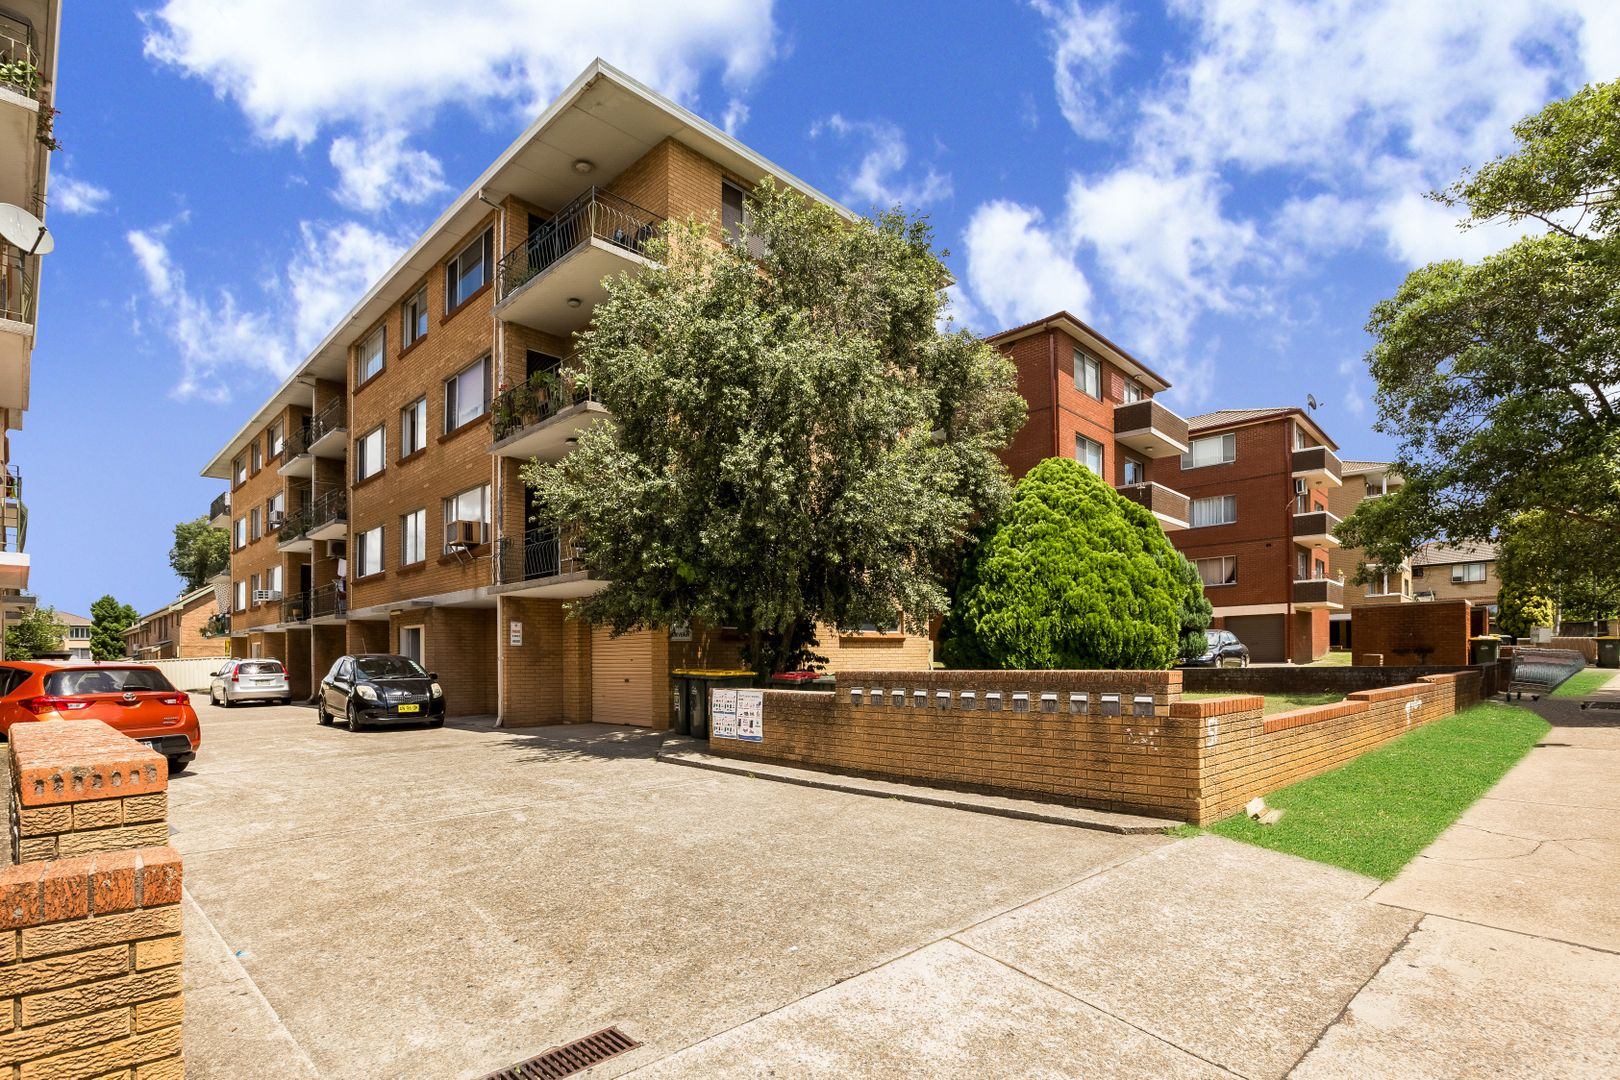 15/49-51 Station Street, Fairfield NSW 2165, Image 0